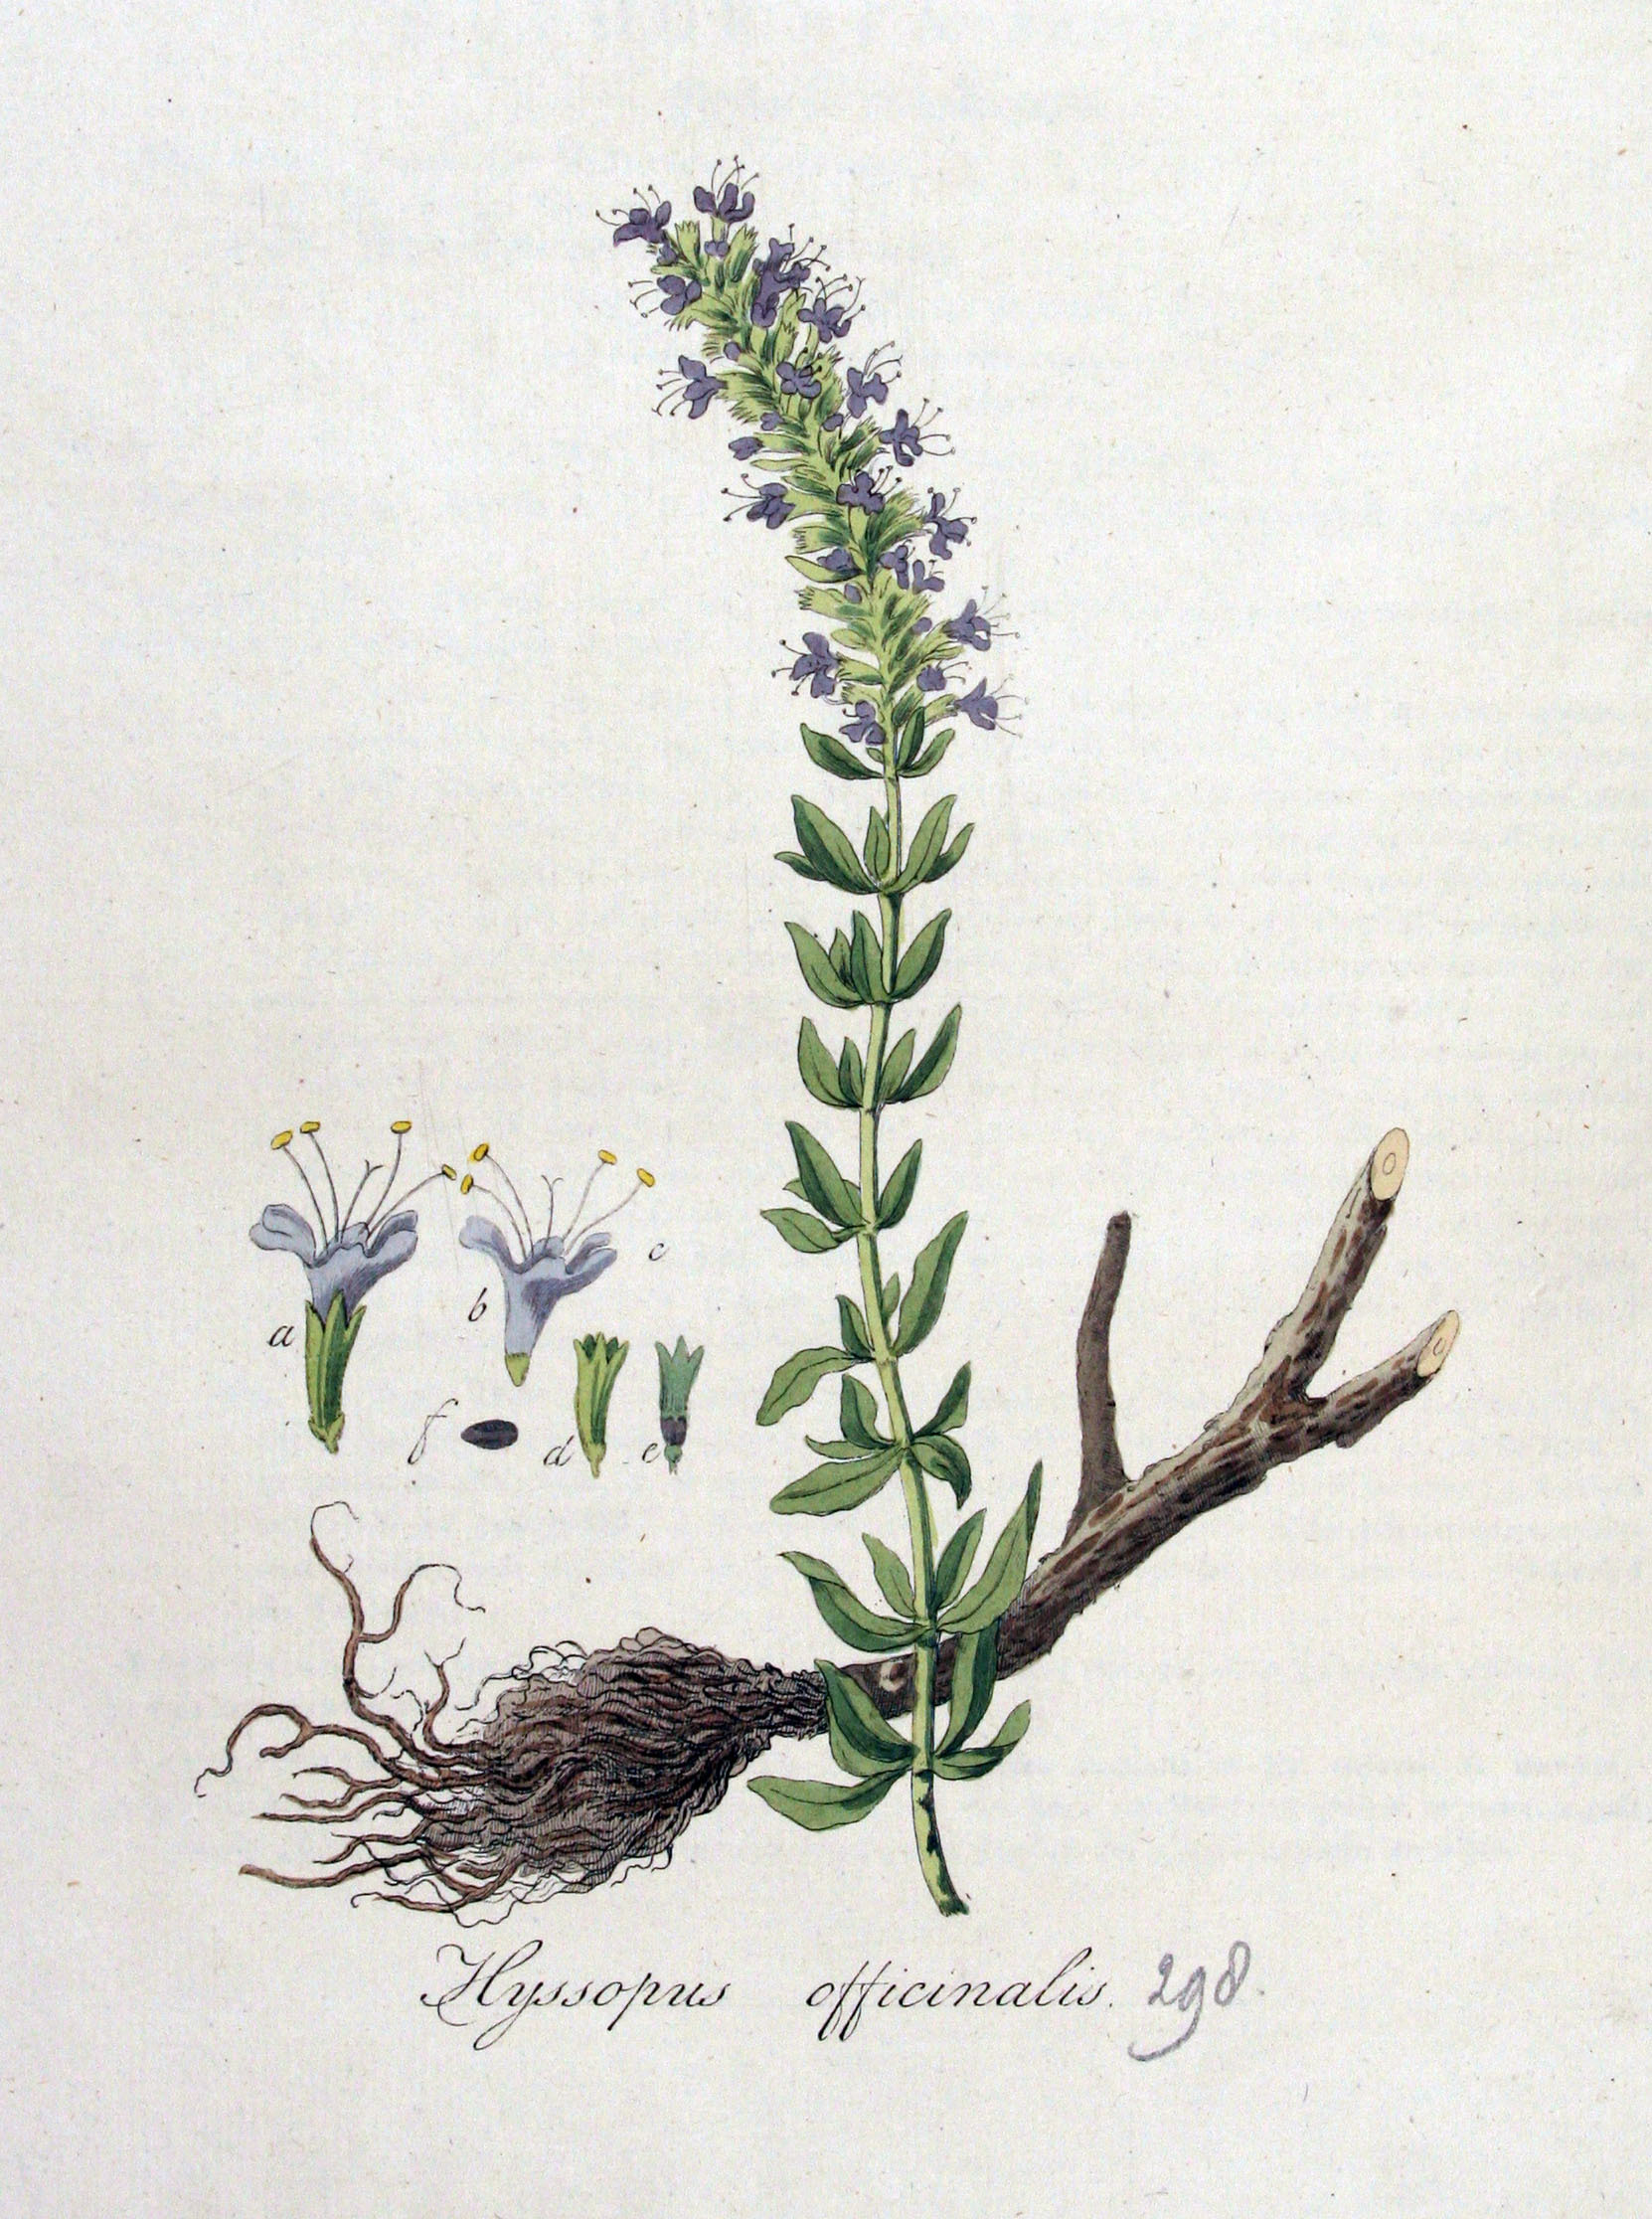 Image of hyssop